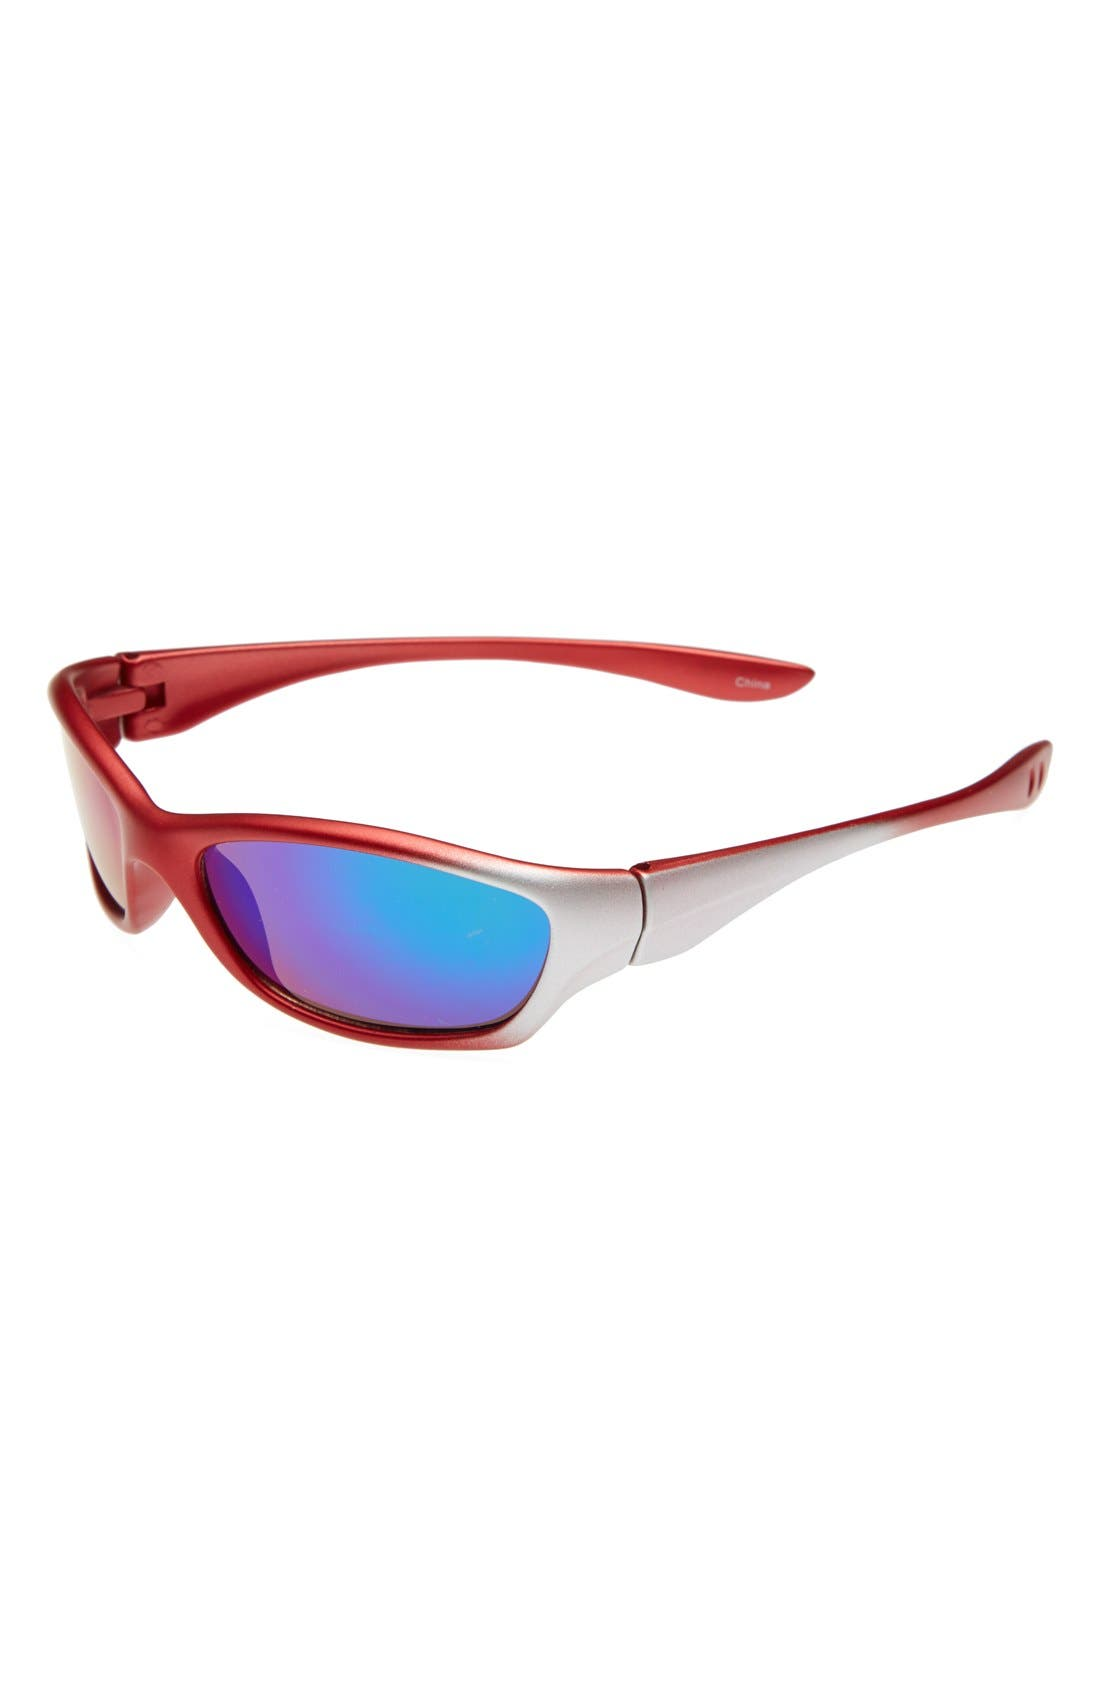 Alternate Image 1 Selected - Icon Eyewear 'Jimmy' Sunglasses (Boys)